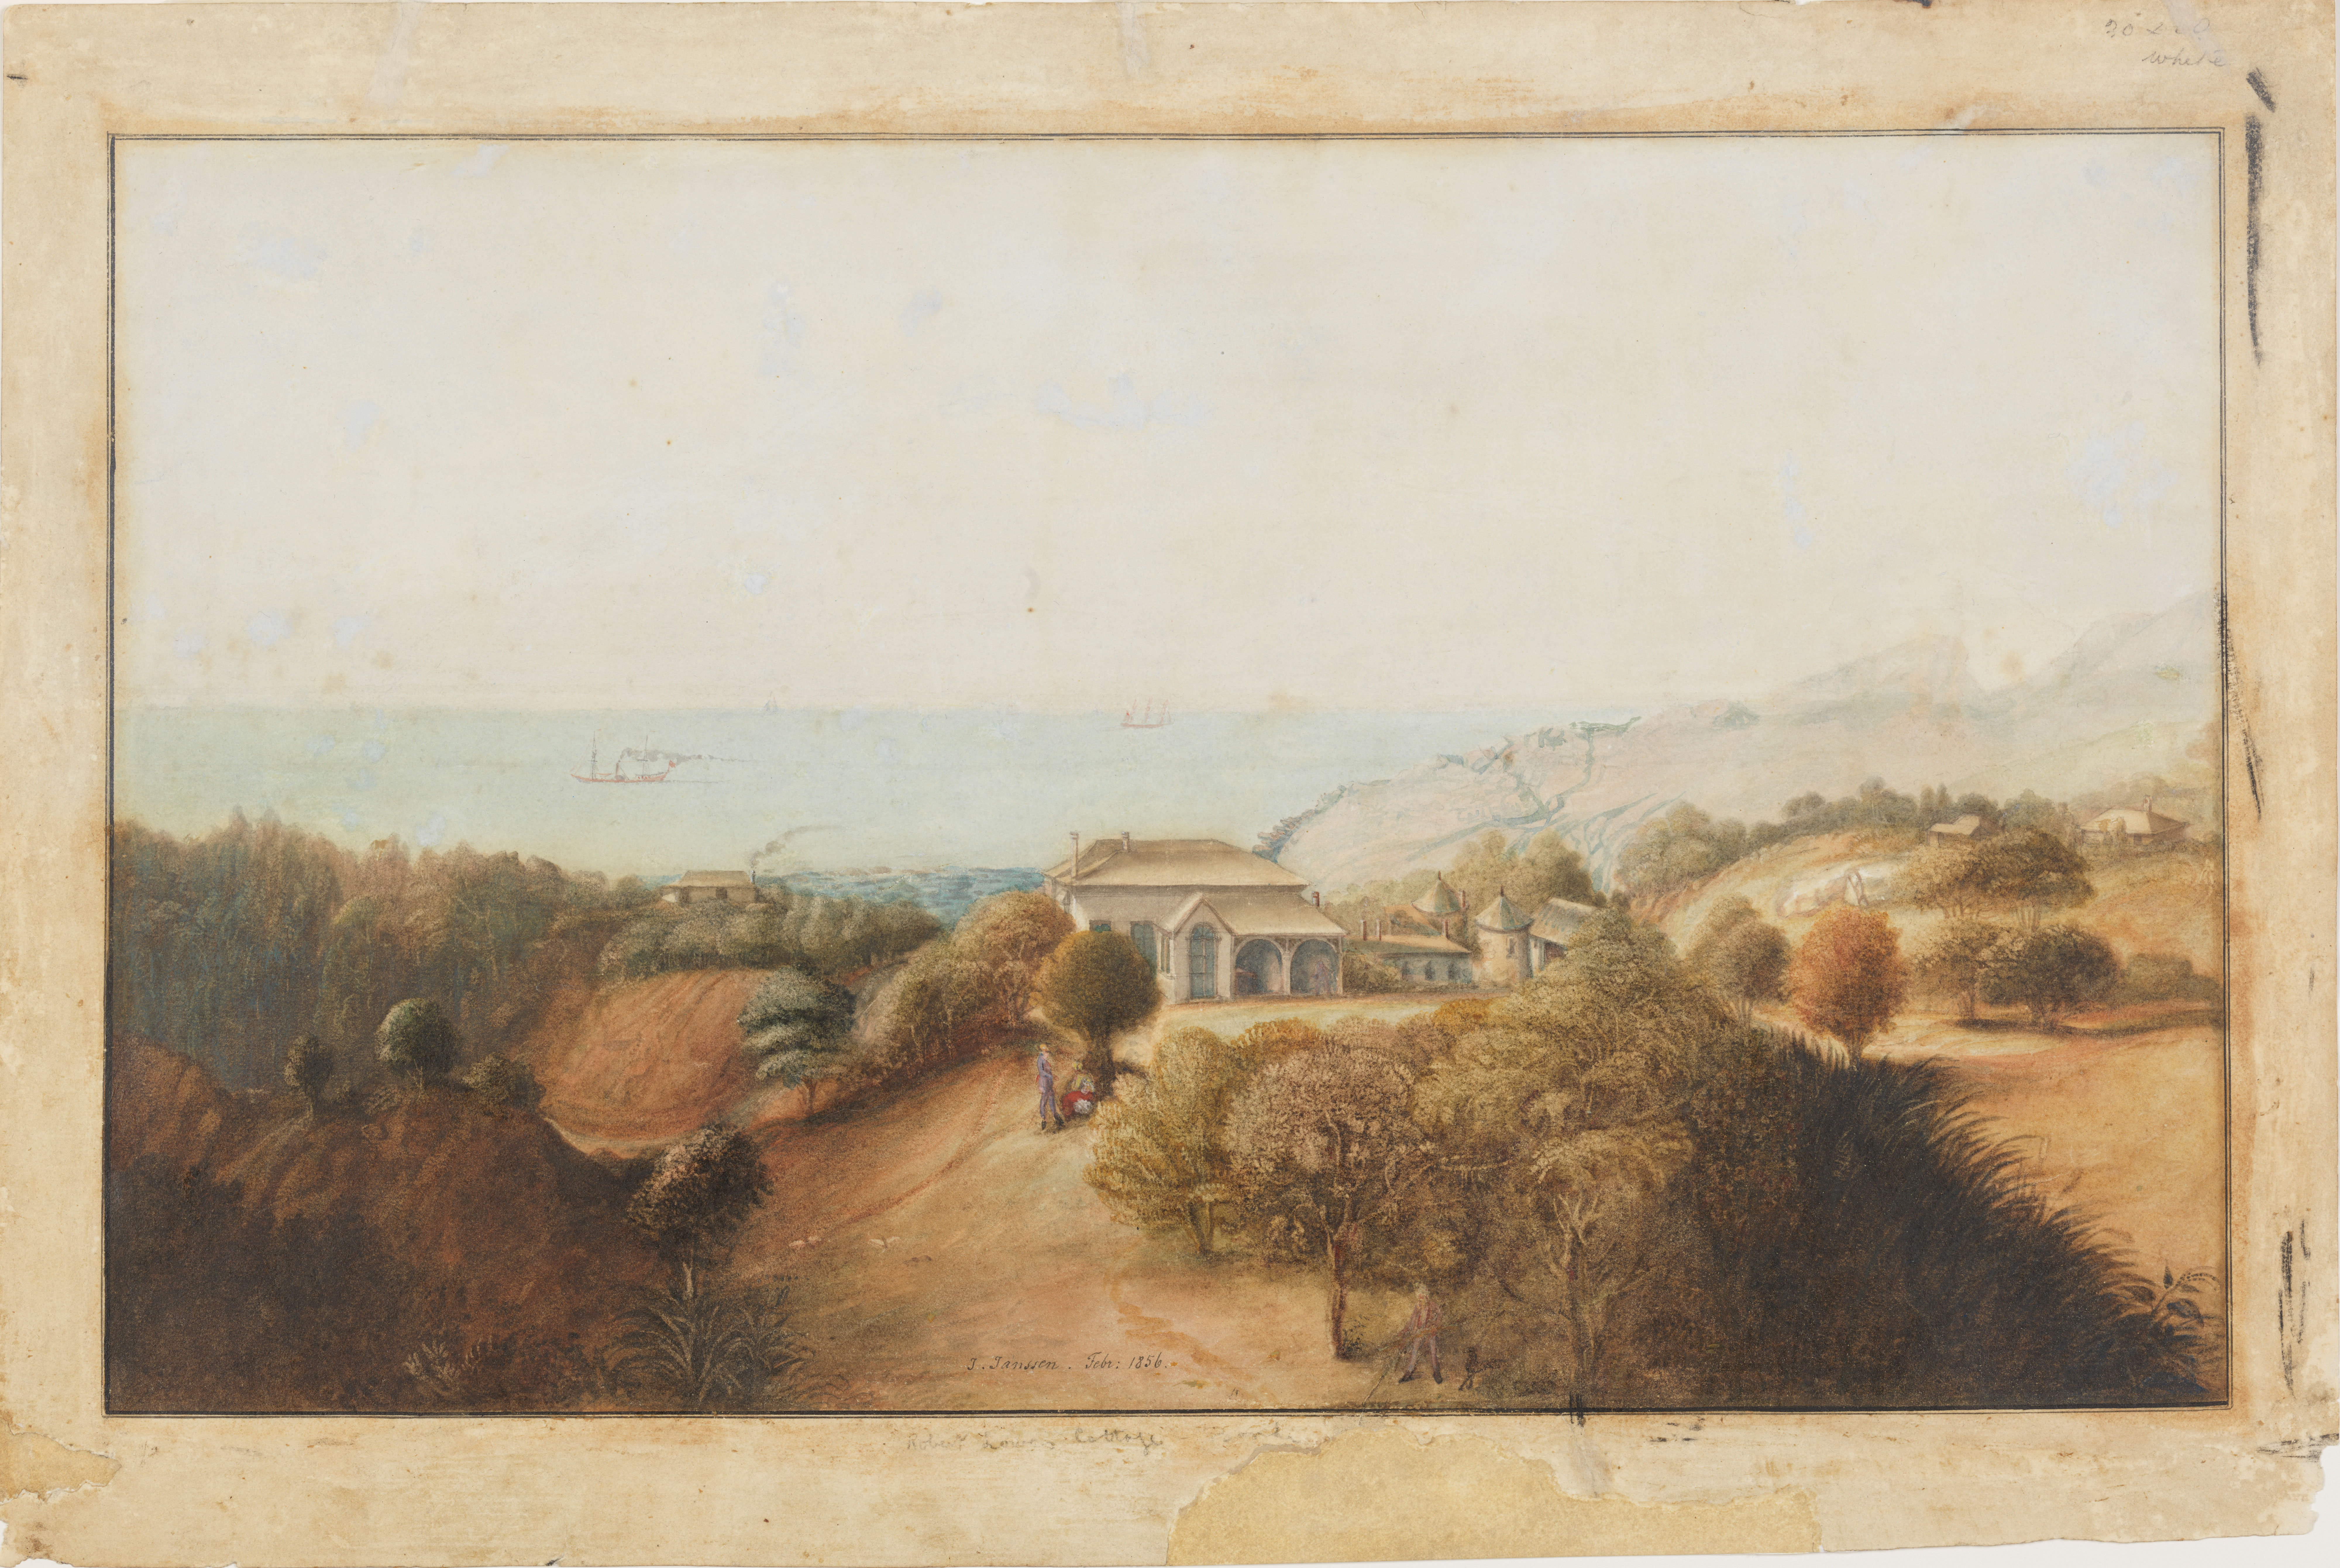 A painting of a view of Bronte House, with hills and bushland in the foreground and the sea with several ships in the distance.